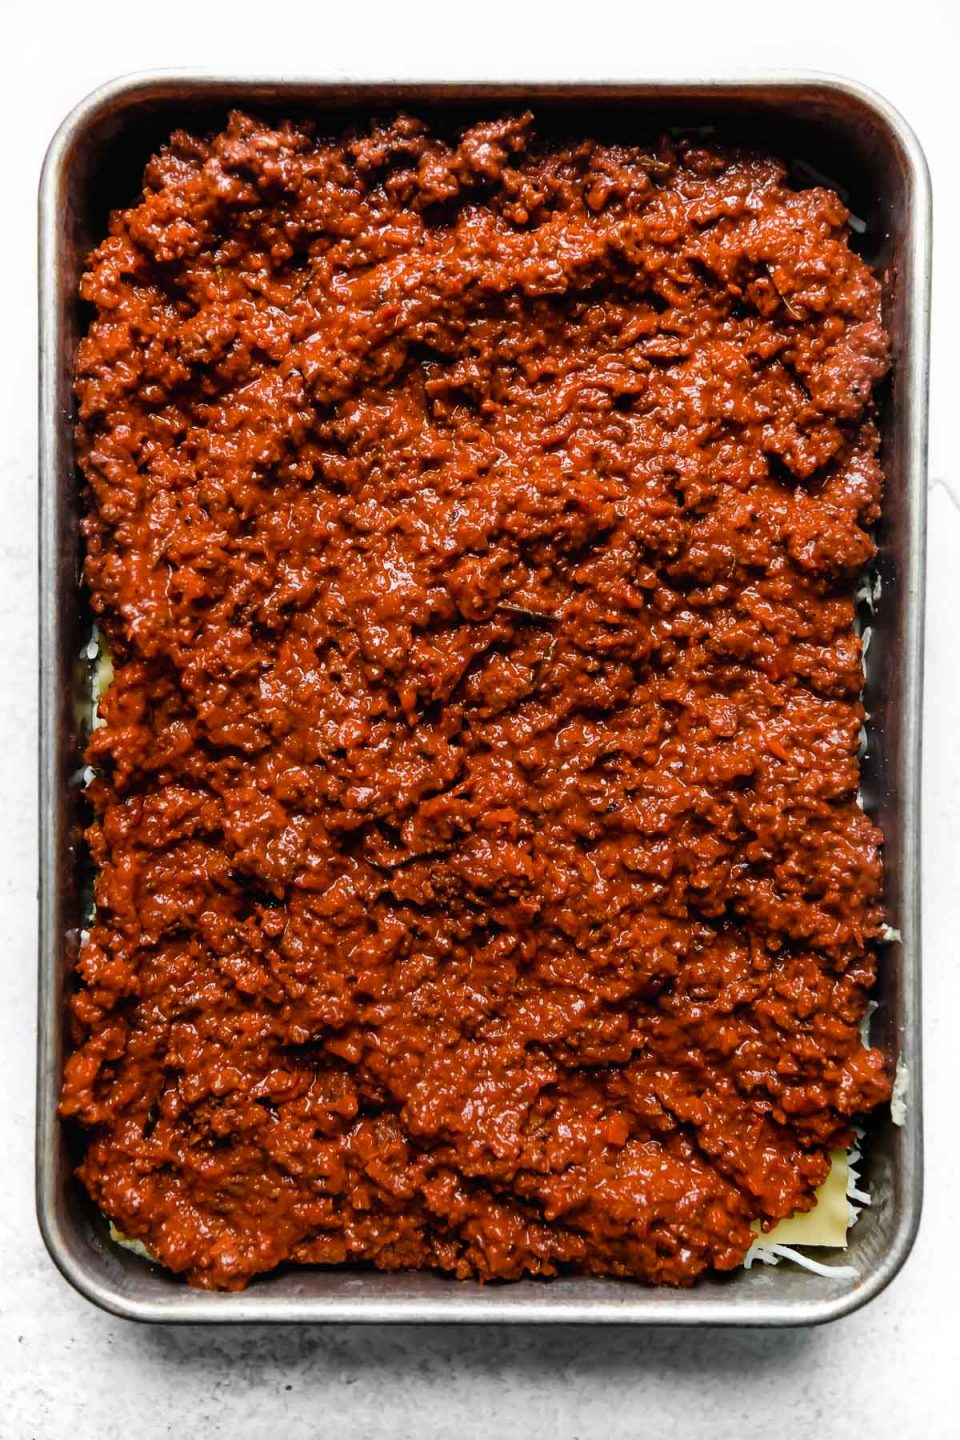 How to assemble & layer lasagna: spreading homemade bolognese sauce over the pasta.